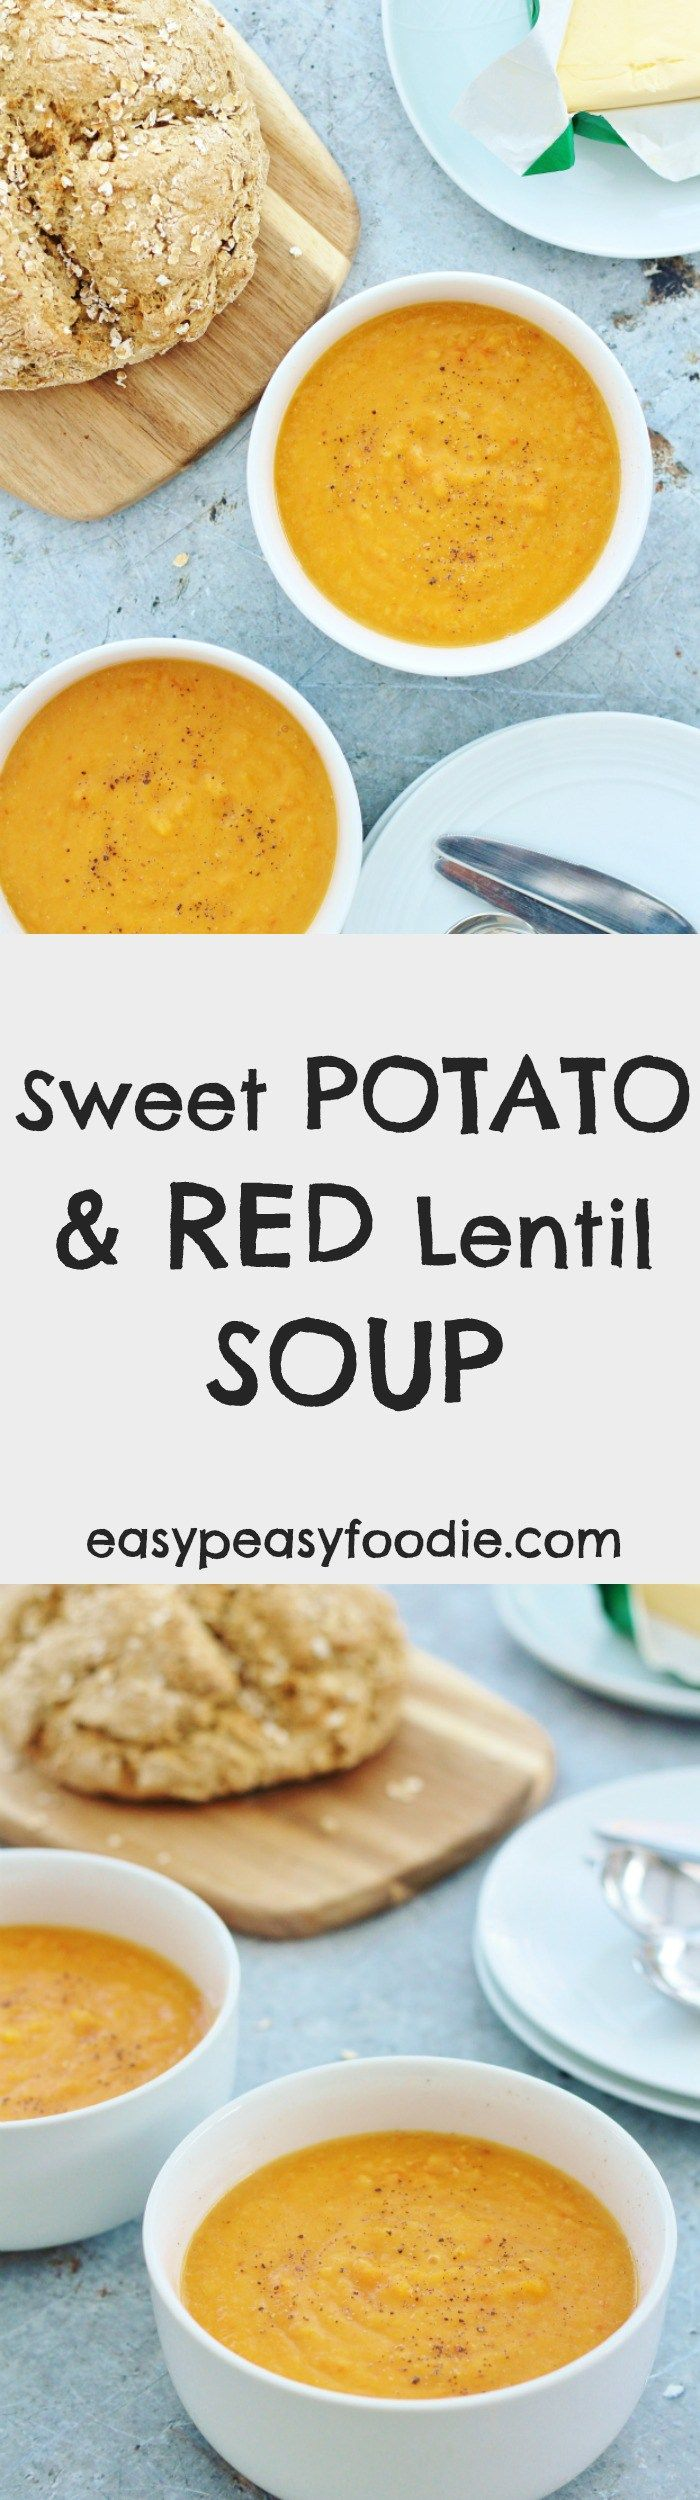 Quick, easy, nutritious and frugal, this Sweet Potato and Red Lentil Soup is just bursting with flavour from the sweet root vegetables, earthy lentils, chillies and spices – perfect for warming you up on a chilly winter's day. It's also vegan, vegetarian, gluten free and dairy free. | Posted By: DebbieNet.com